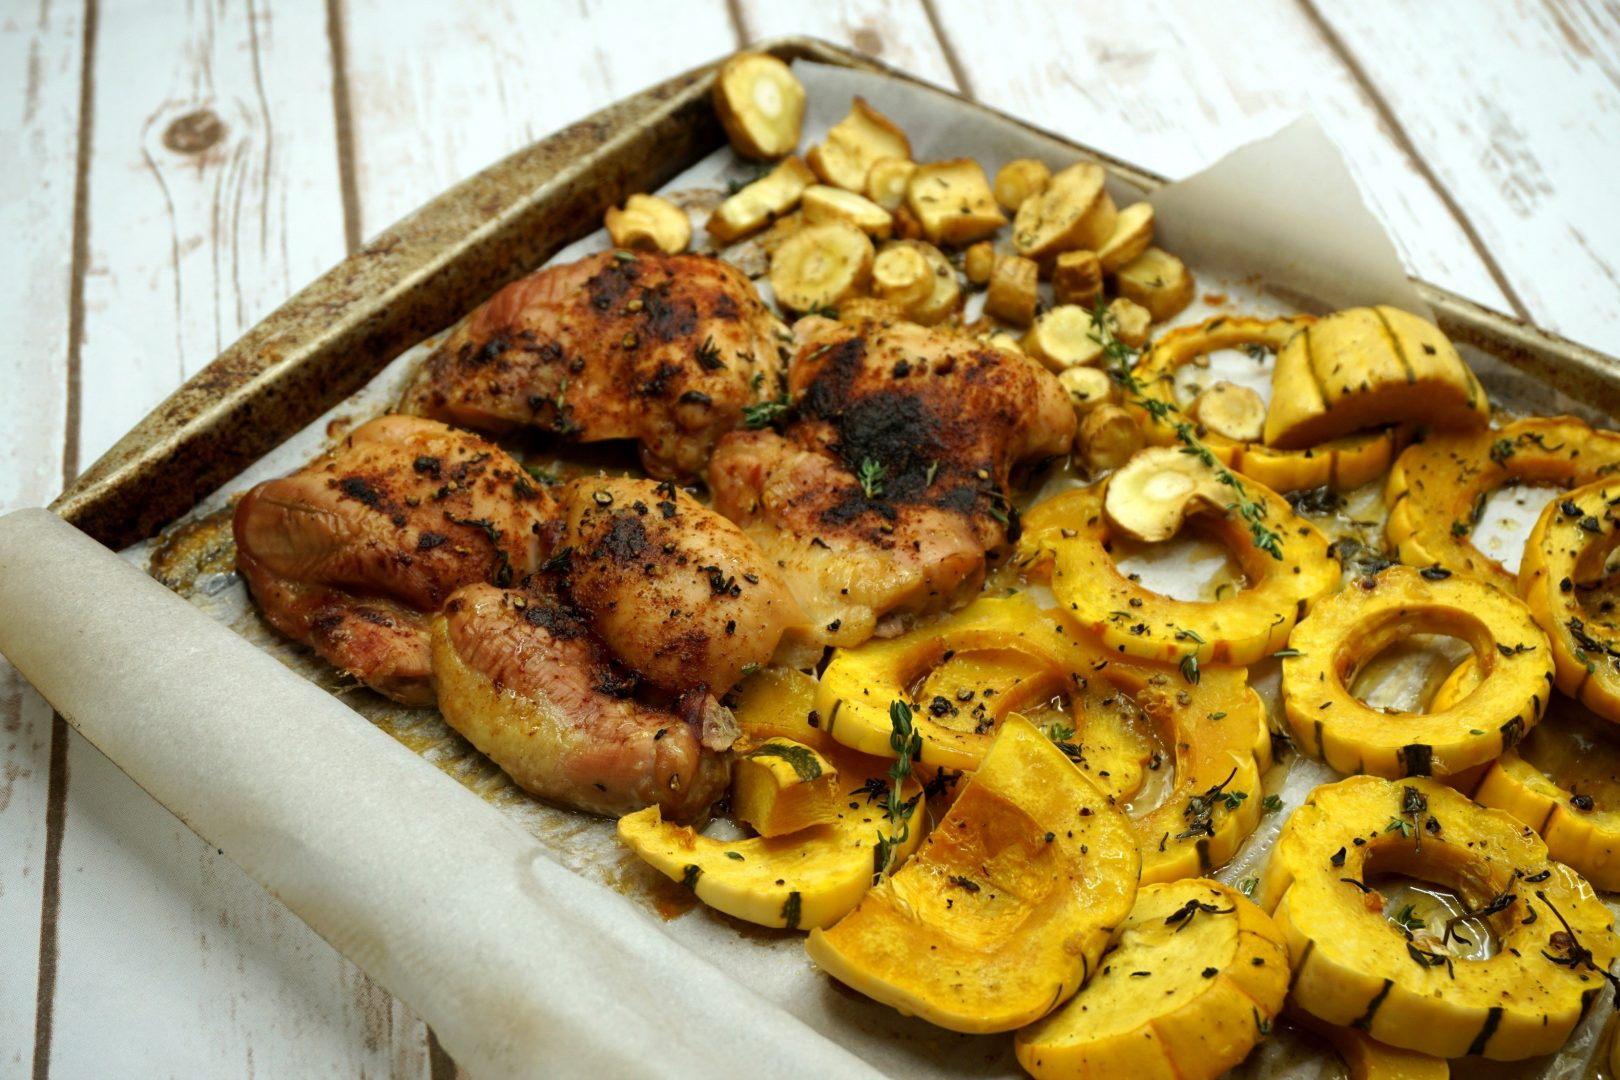 Pellet Smoker Sheet Pan Dinner: Smoked Chicken Thighs with Maple Thyme Glazed Delicata Squash